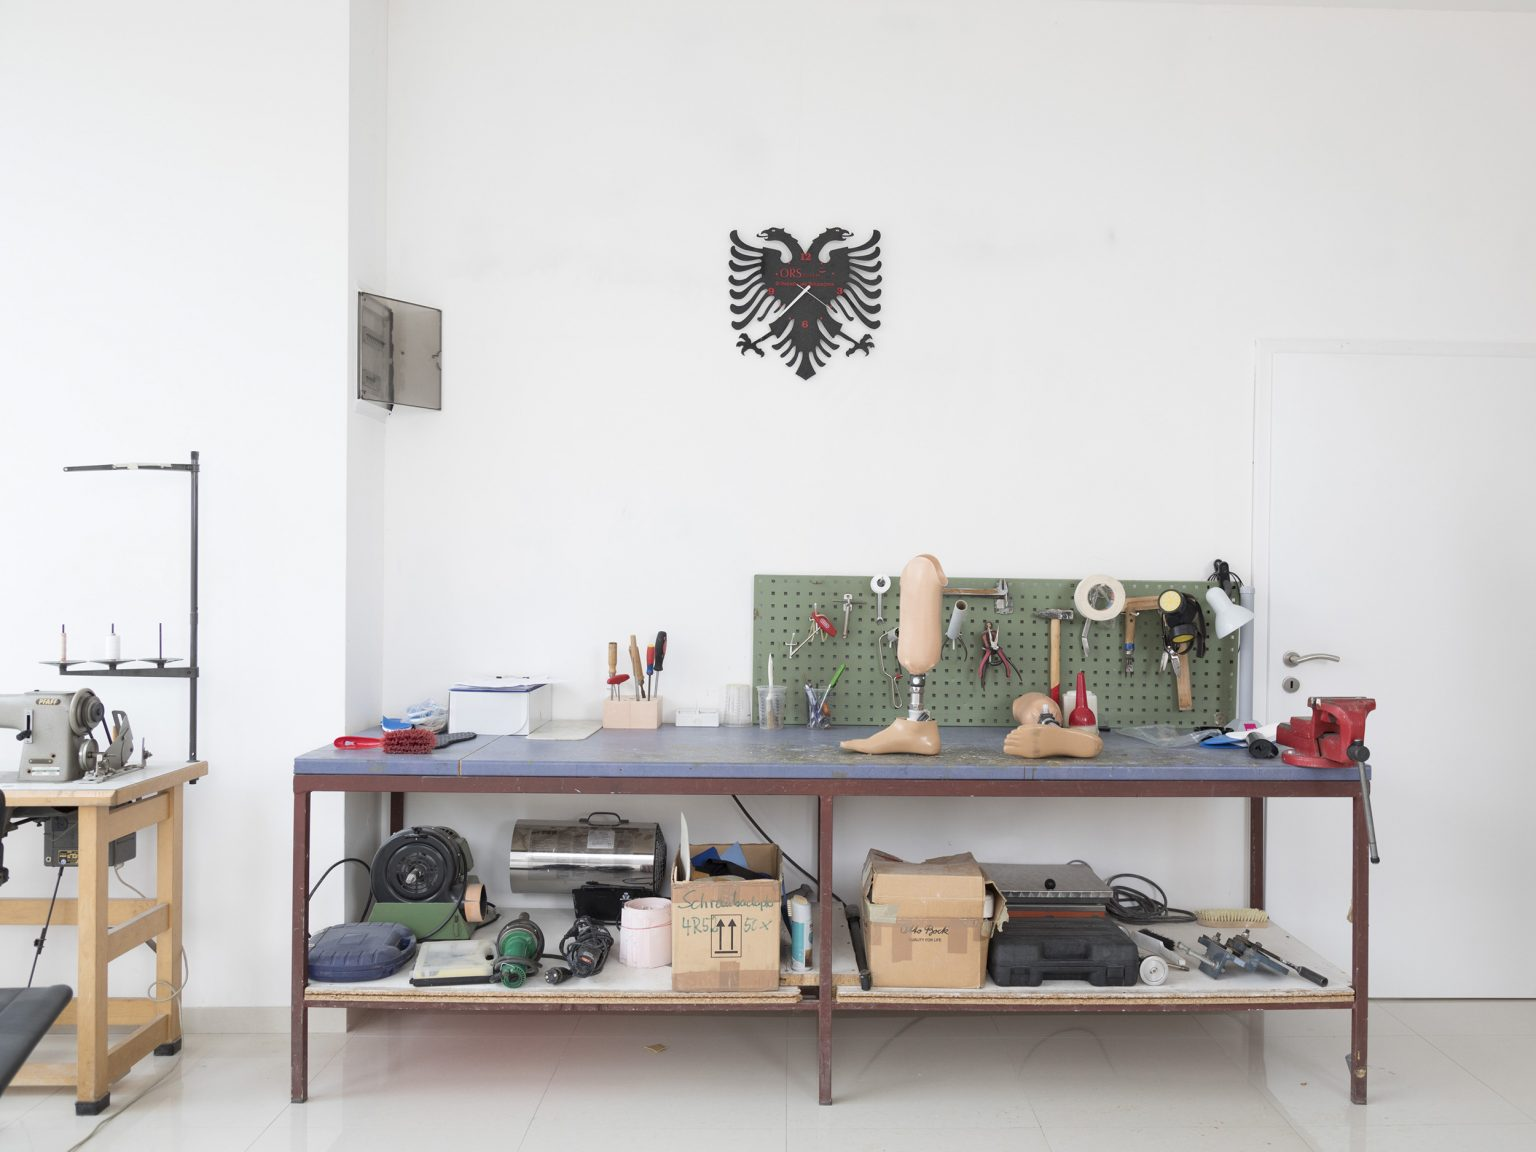 A working bench inside ORS, a company which manufactures prosthetic limbs and provides physiotherapy for invalids, most of which have lost limbs on landmines. There is no exact data regarding the number of land-mines victims in the country. According to ORS there are about 100 former UCK soldier and about 200 civilians, while many other have left the country to seek better cures. However according to the UN, there are about 10 civil invalids for each war invalid. In 2015 ORS provided free prosthetic limbs for about 40 civilians. Their cost is very high - from 2000 euros to 6000 euros - and the pension given by the government to civil invalids is about 70 euros/month.